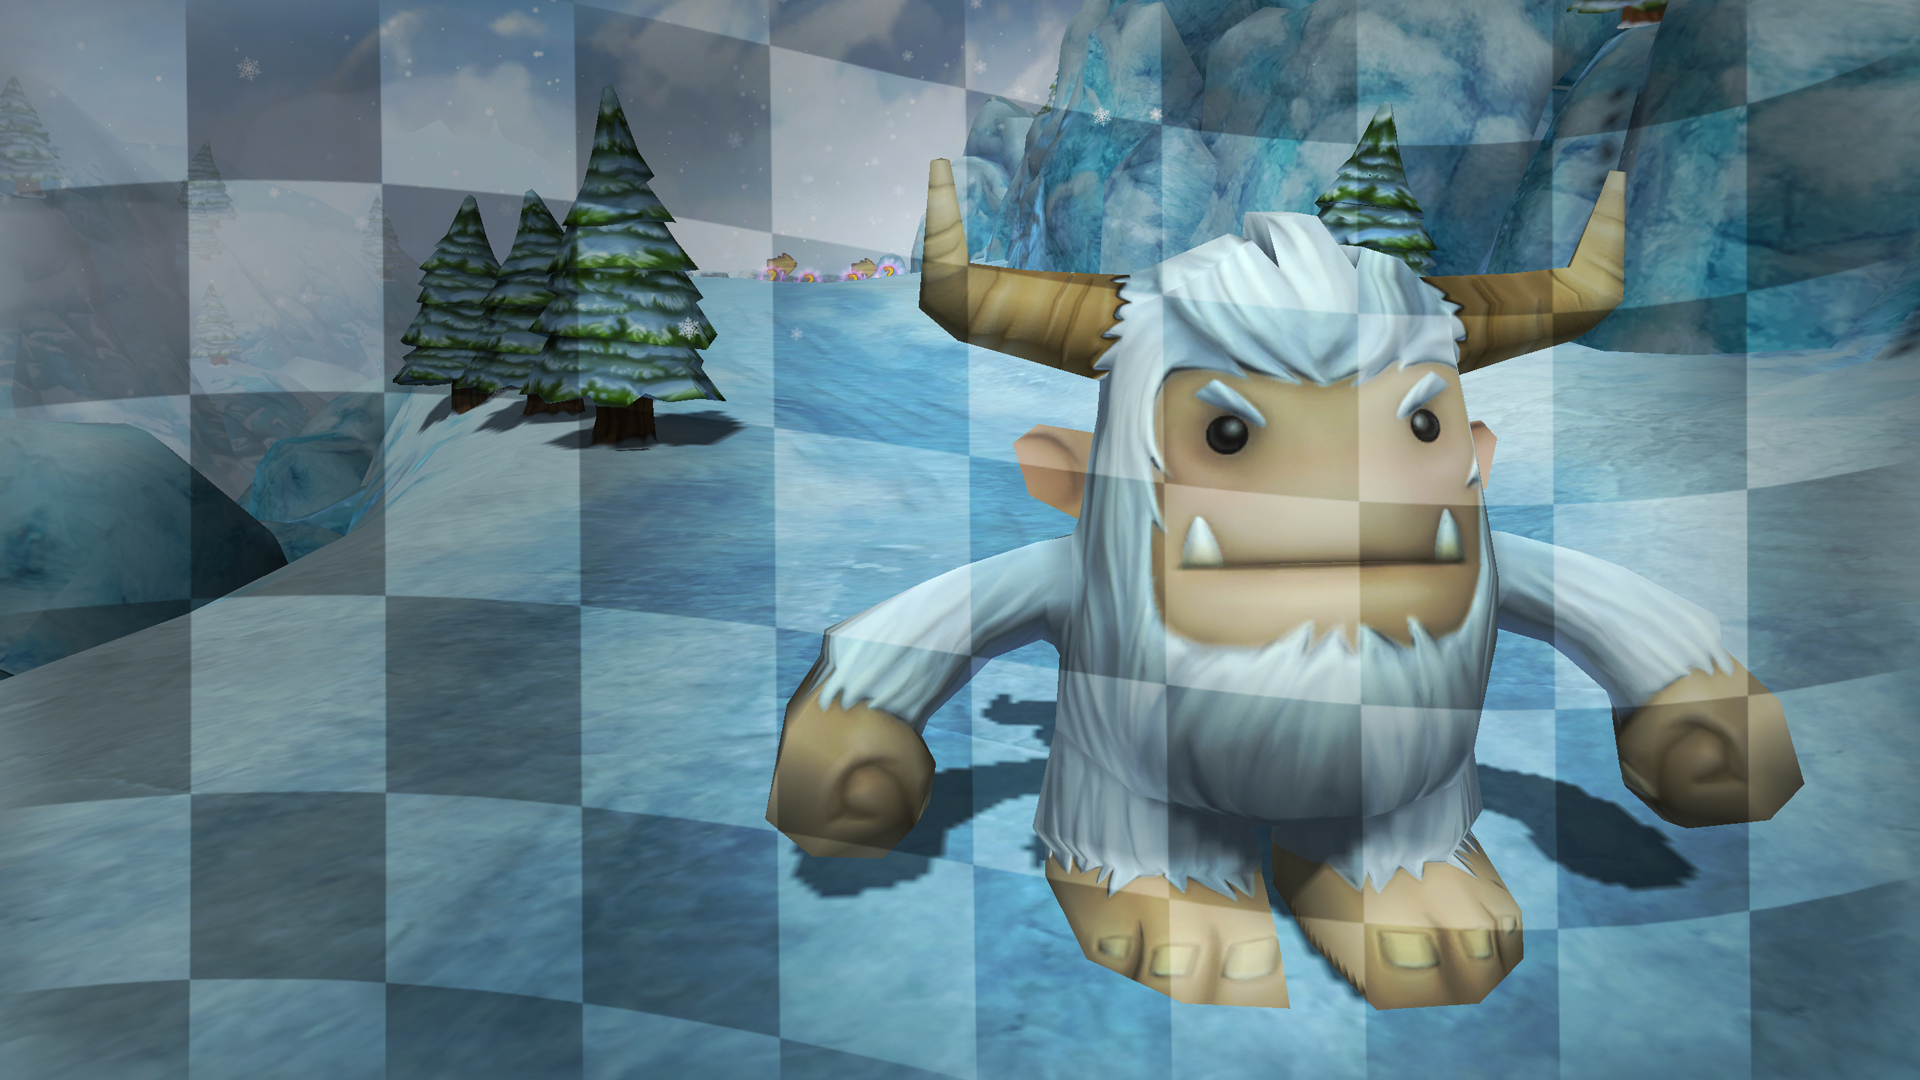 Cry of the Yeti